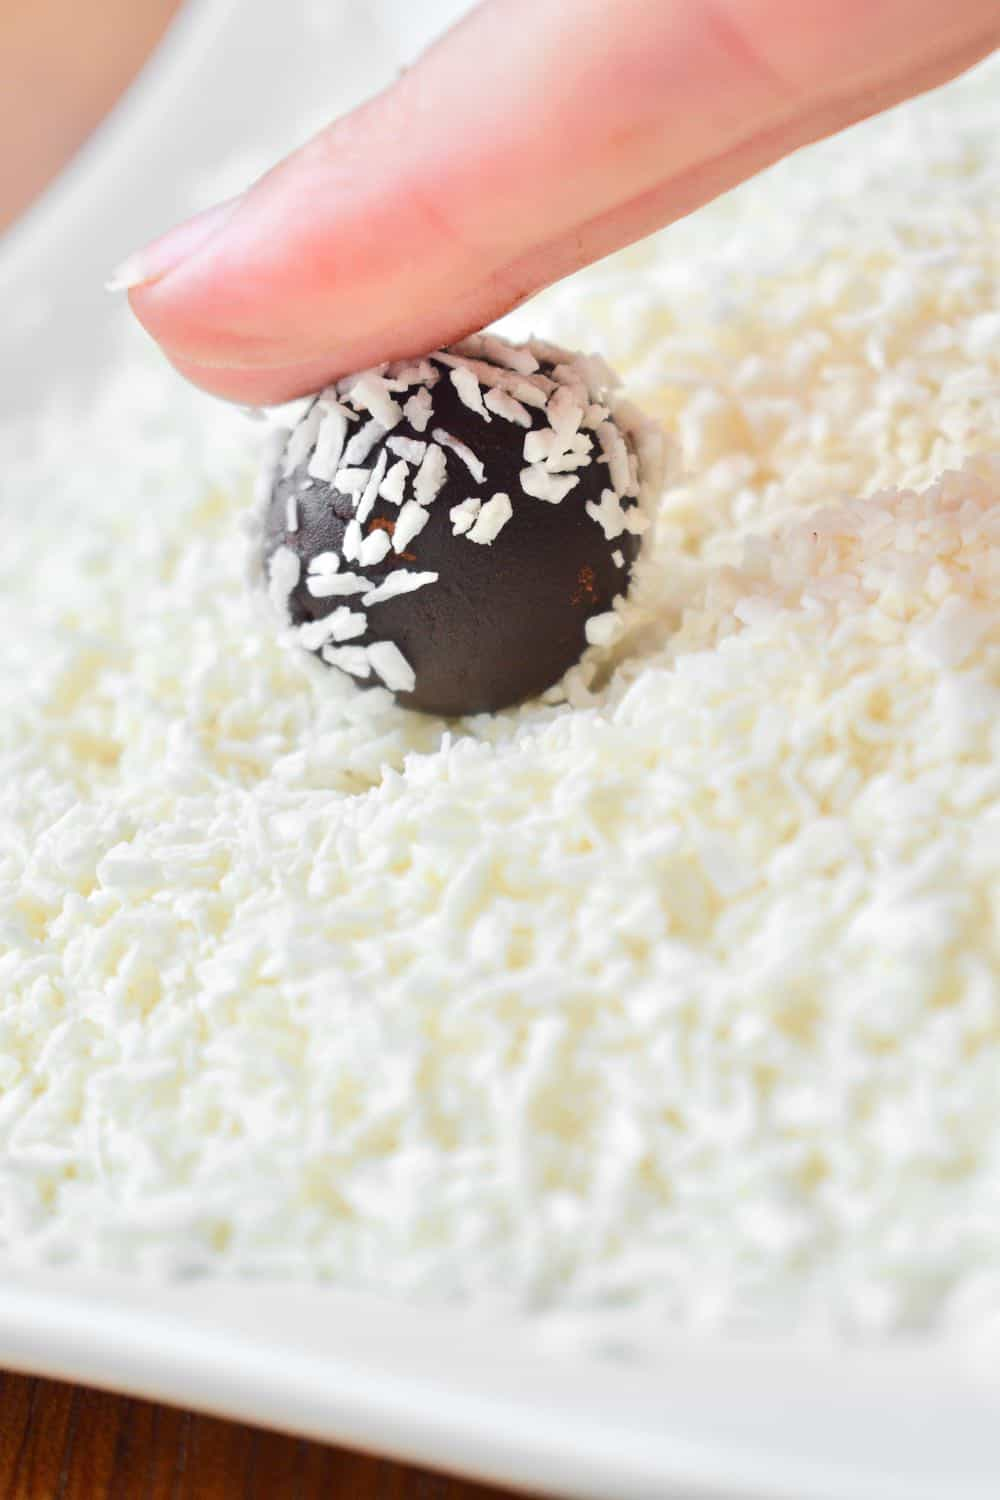 Rolling the rum ball in coconut